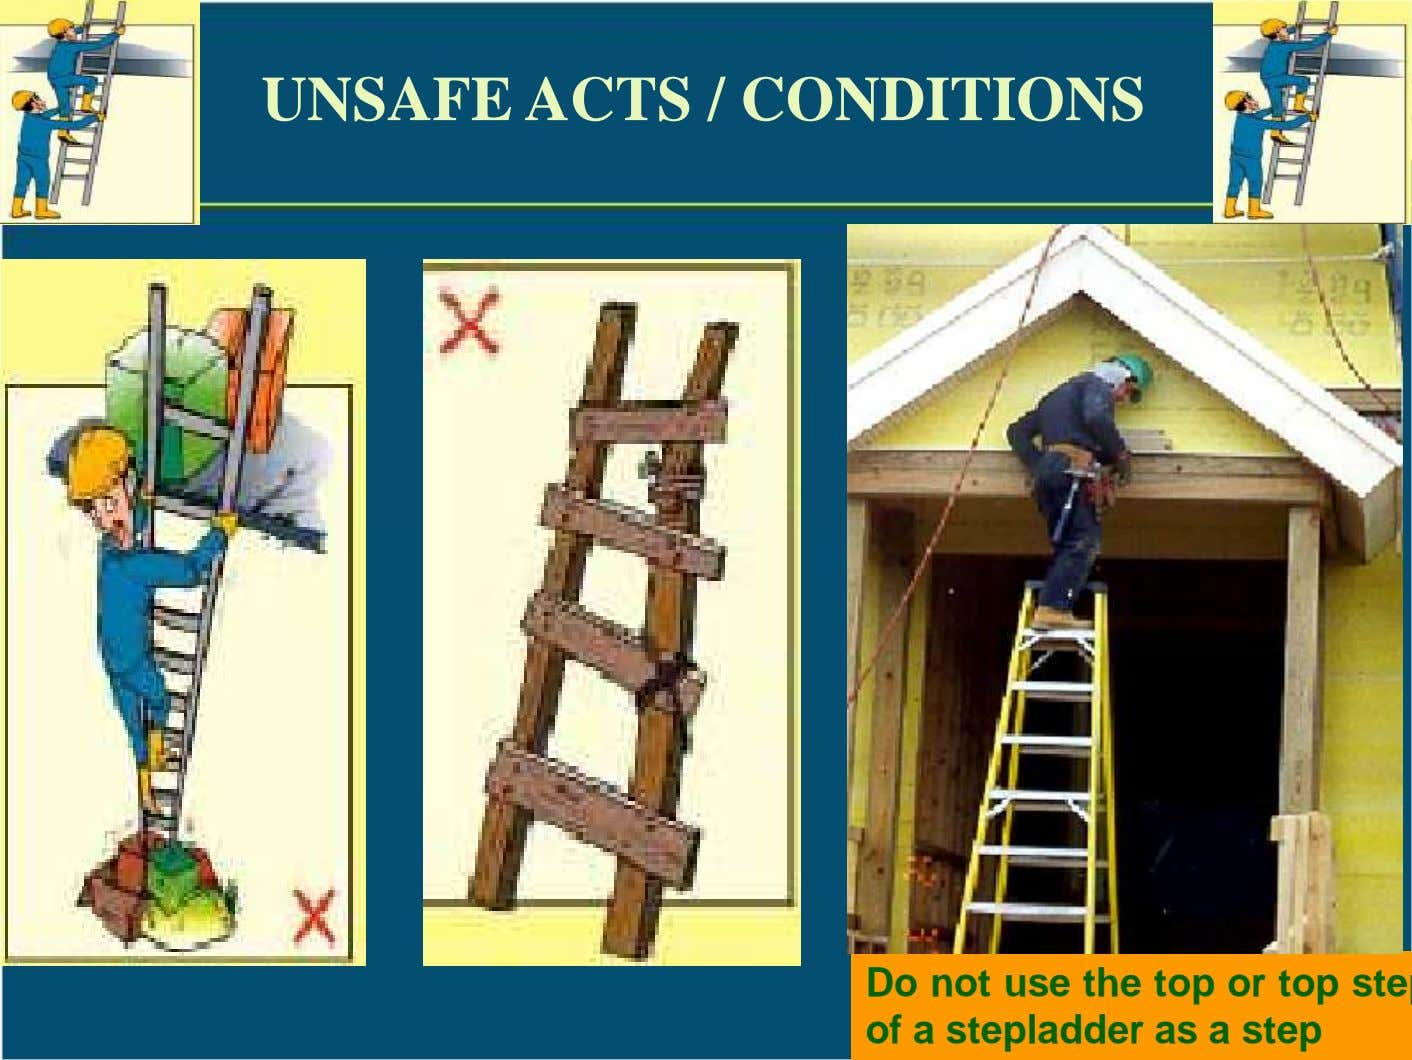 UNSAFE ACTS / CONDITIONS Do not use the top or top ste of a stepladder